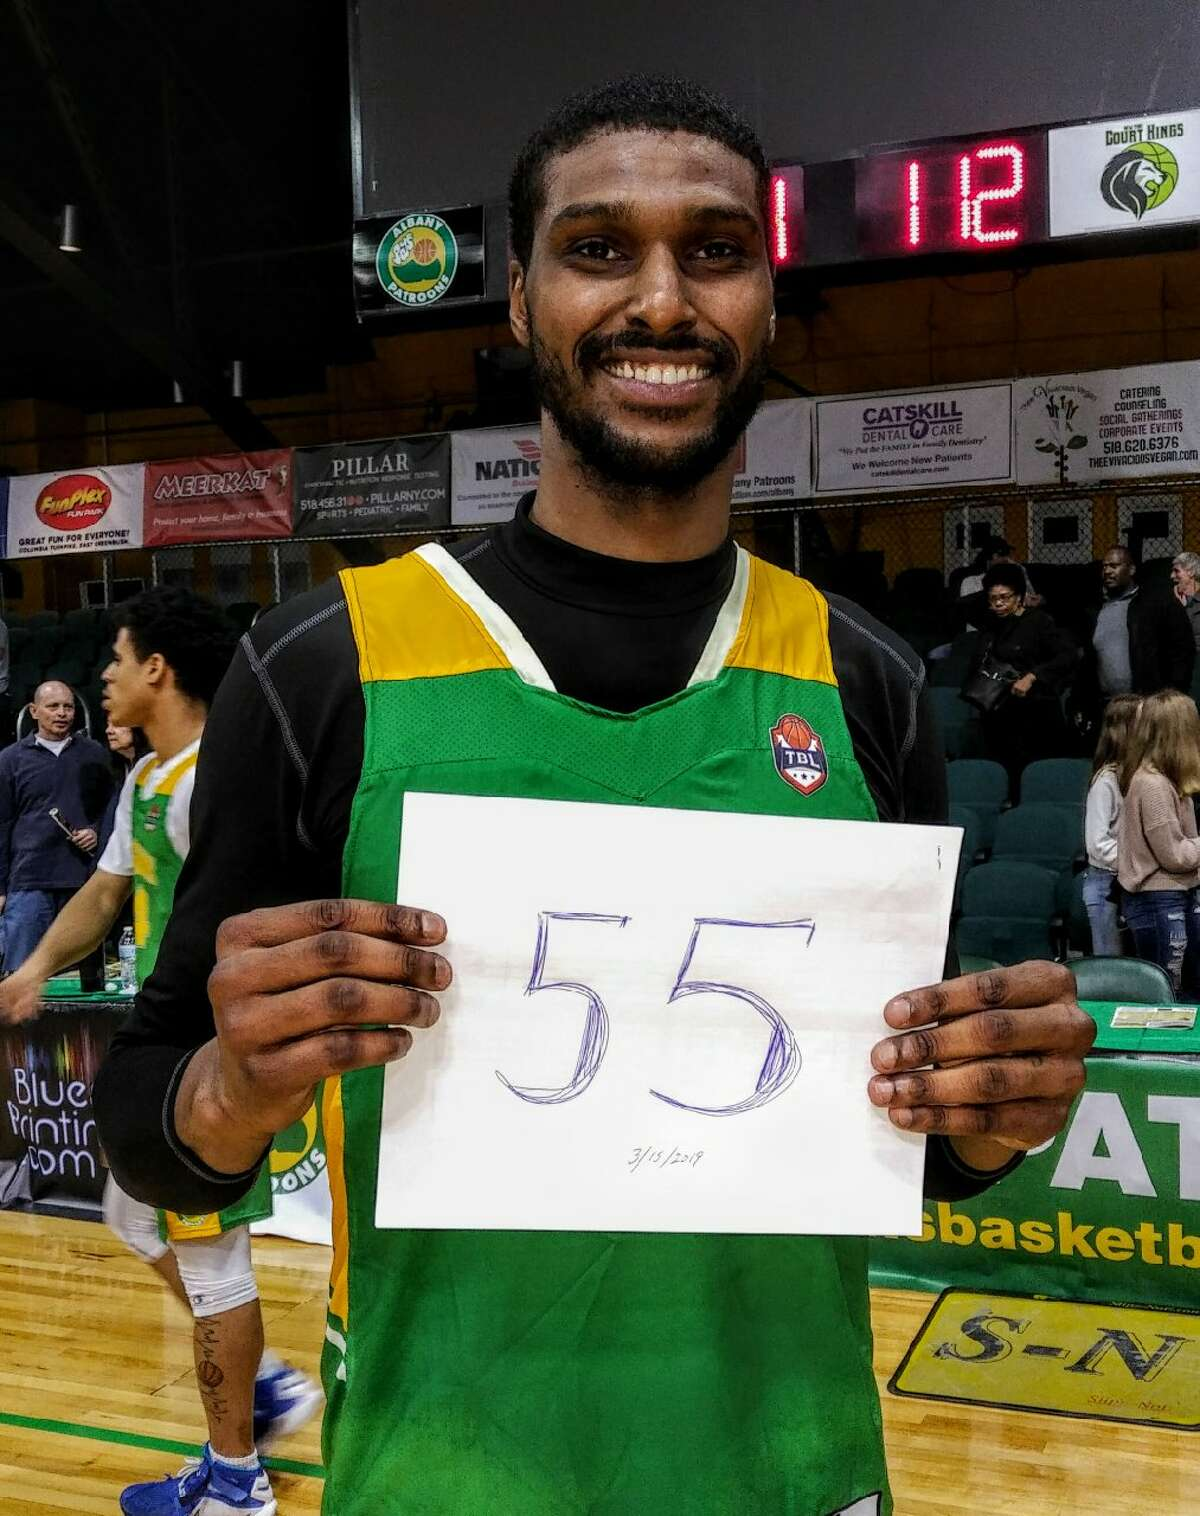 Edwin Ubiles poses with a sign signifying his 55-point game against New York on Friday, March 15, 2019. Ubiles set a franchise record. (Courtesy of Albany Patroons)